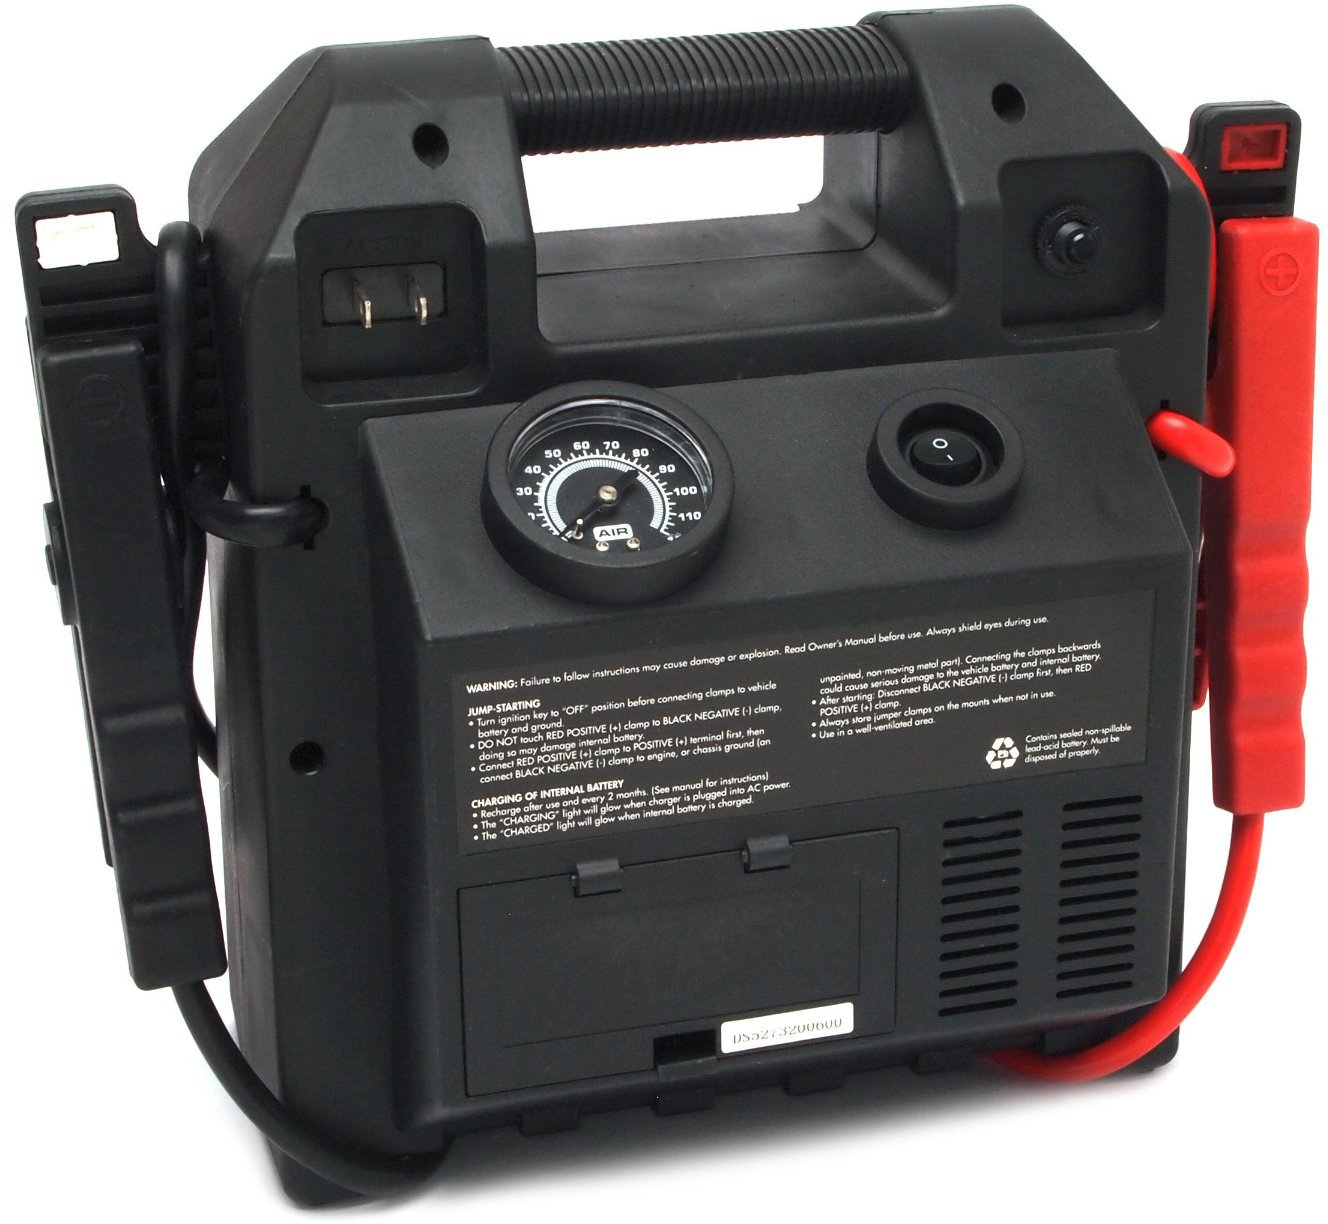 Forney 52732 Battery Booster Pack with 120 PSI Air Compressor, 18-Amp Hour, 12-Volt Jump Start by Forney (Image #6)